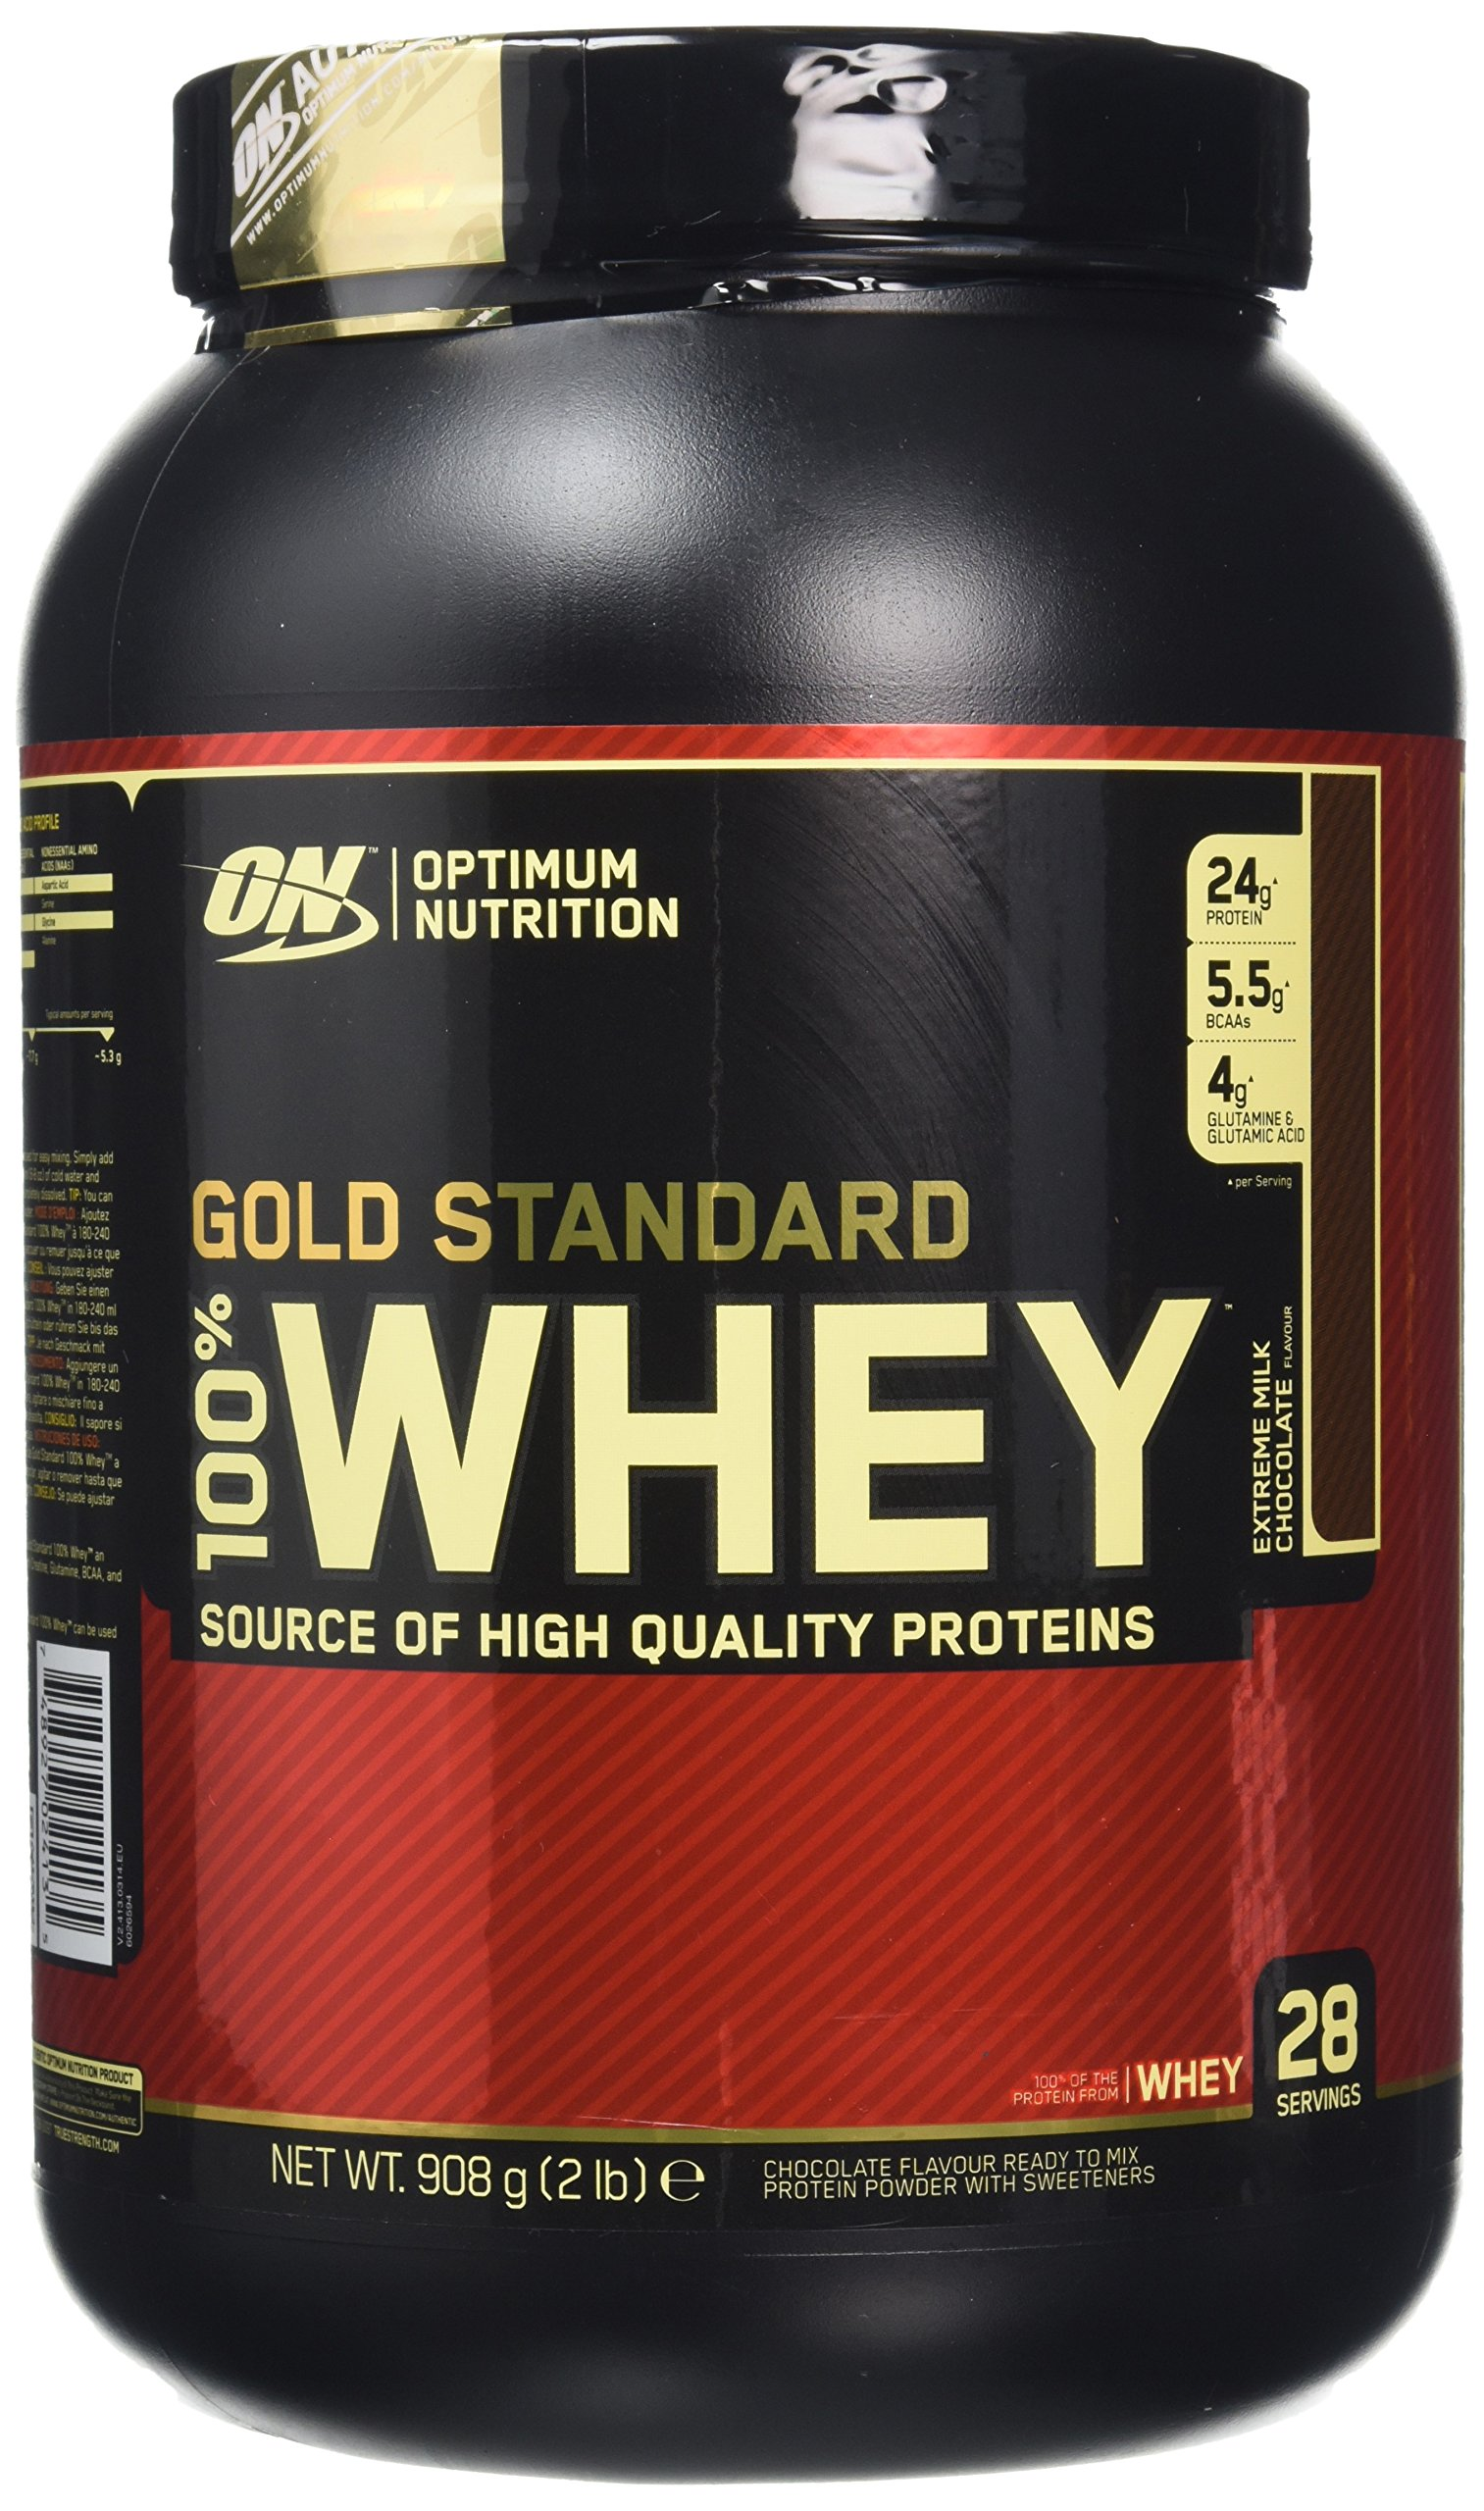 e95c09be4 Buy Optimum Nutrition Gold Standard 100% Whey Protein Powder ...